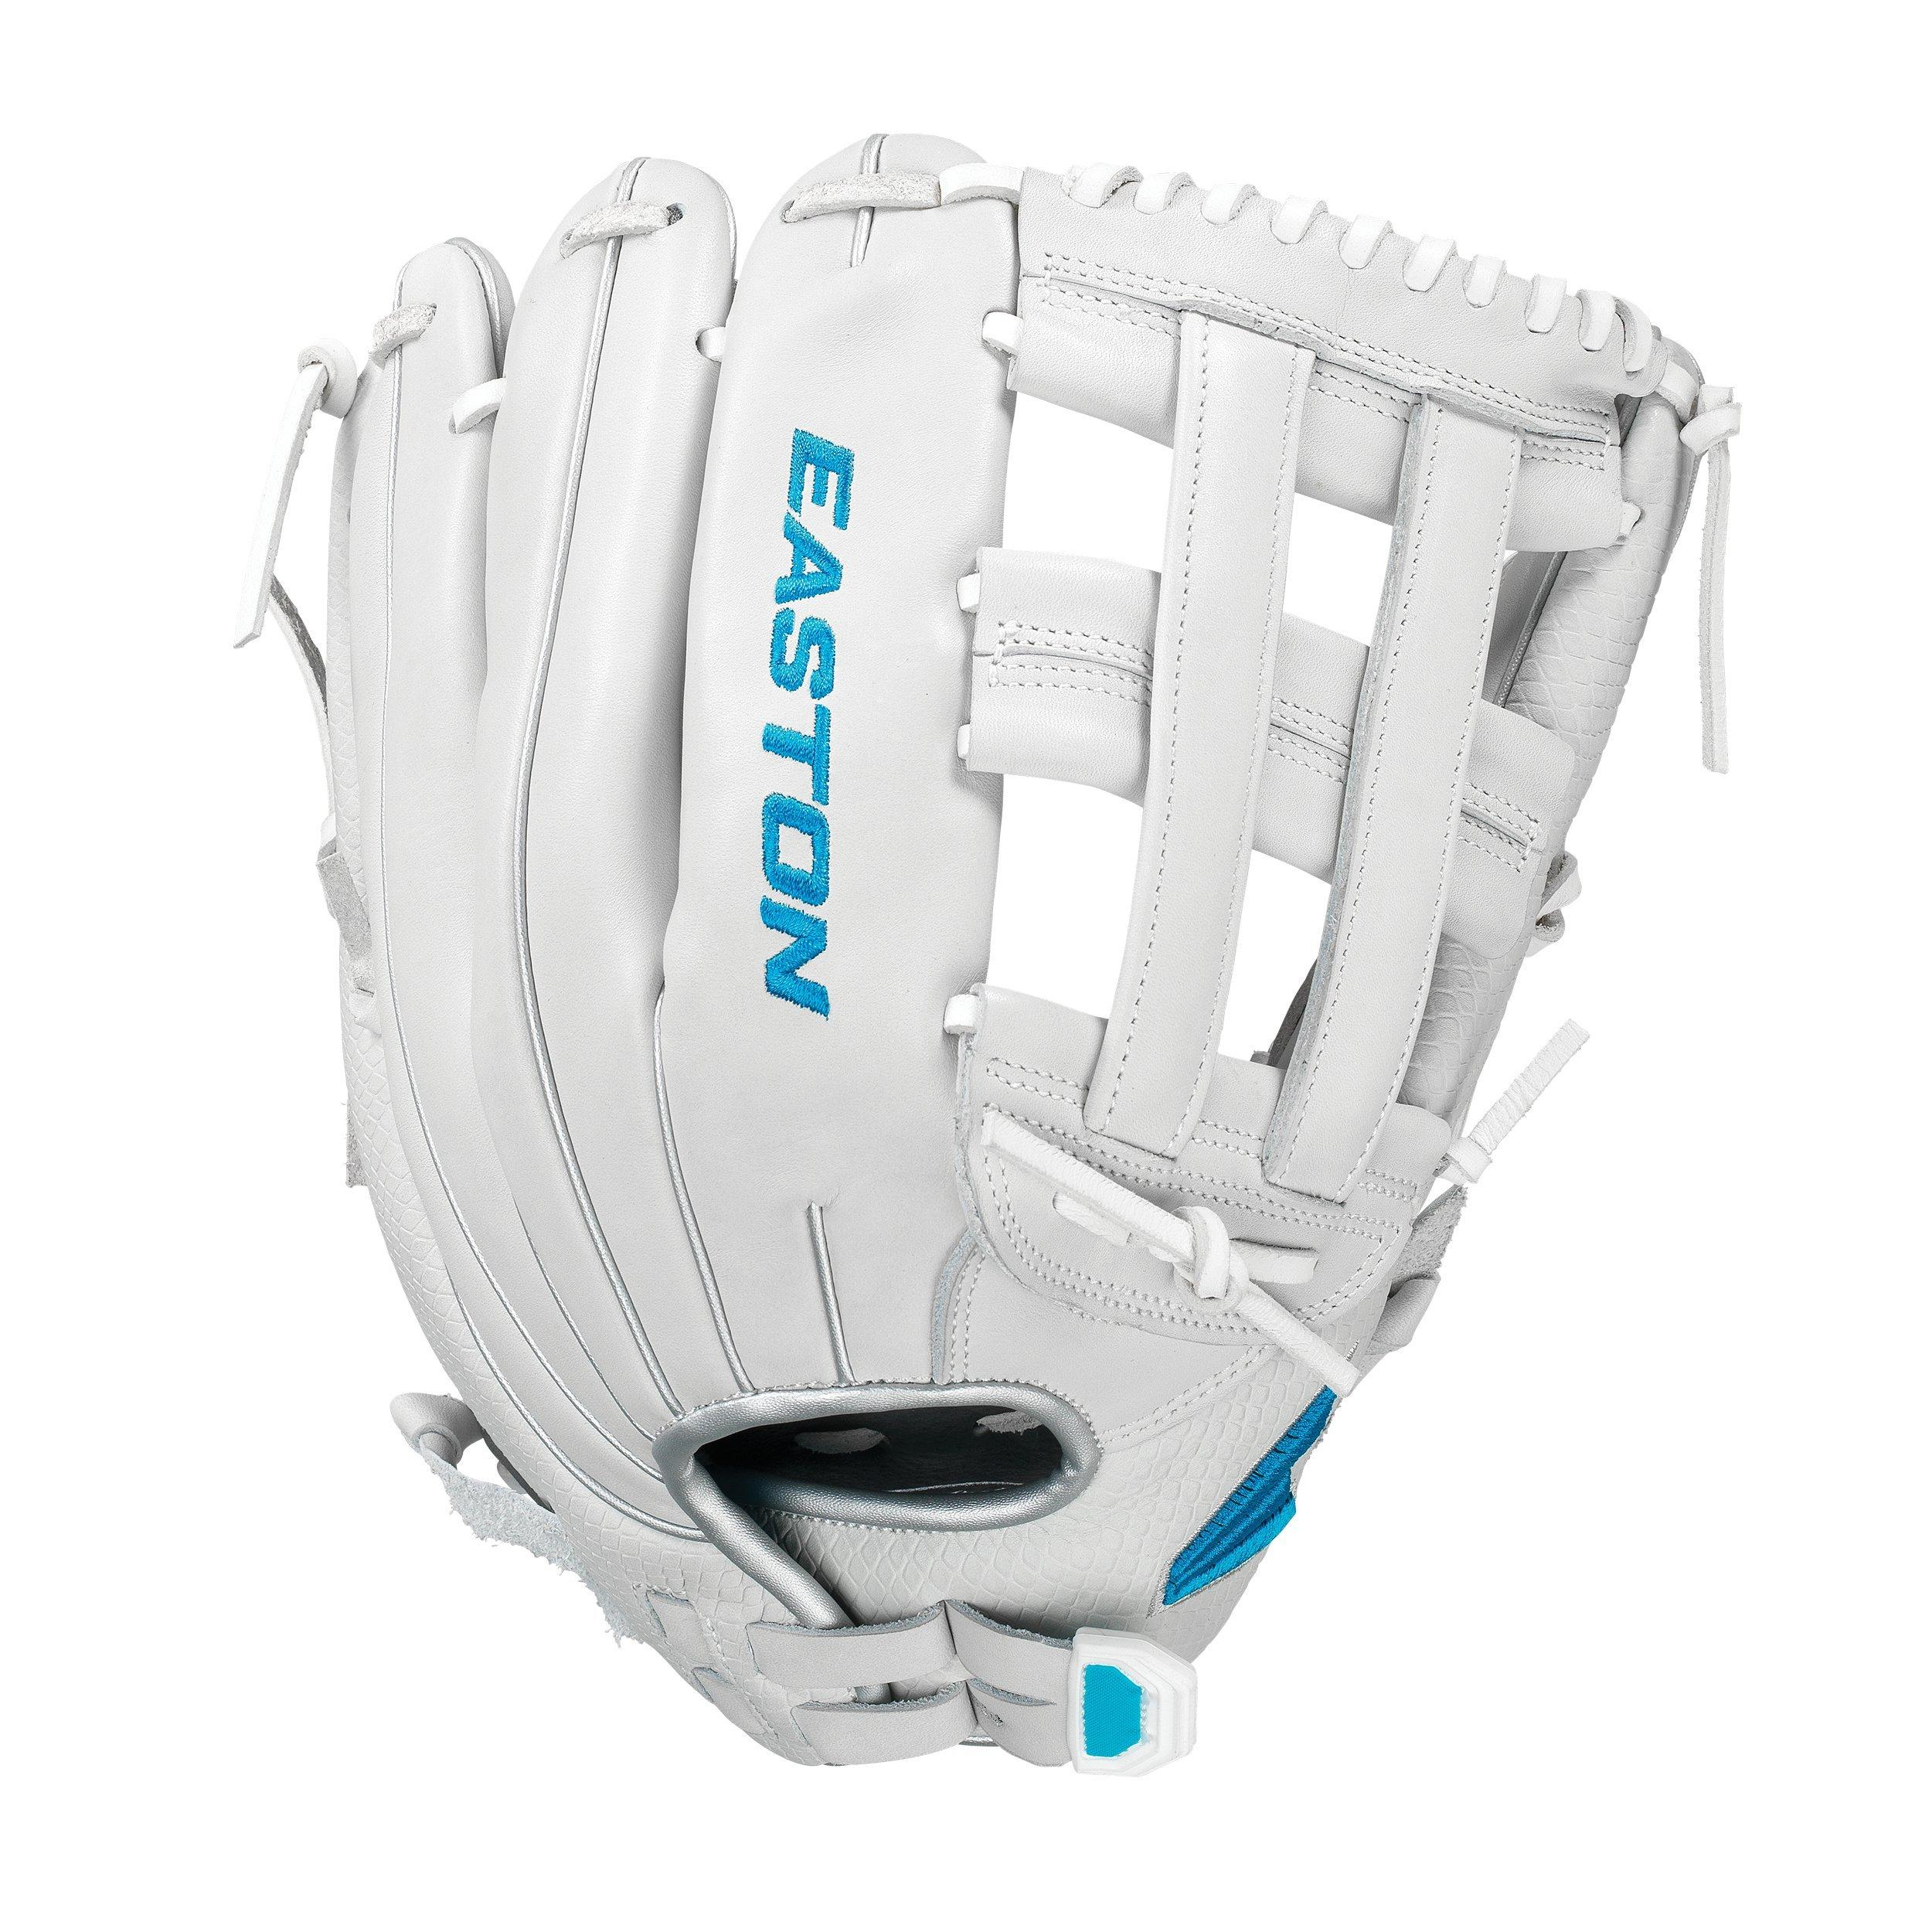 easton-ghost-tournament-elite-fastpitch-softball-glove-12-75-inch-right-hand-throw GTEFP1275-RightHandThrow   <span>The Ghost Tournament Elite Fastpitch Series gloves are built with the